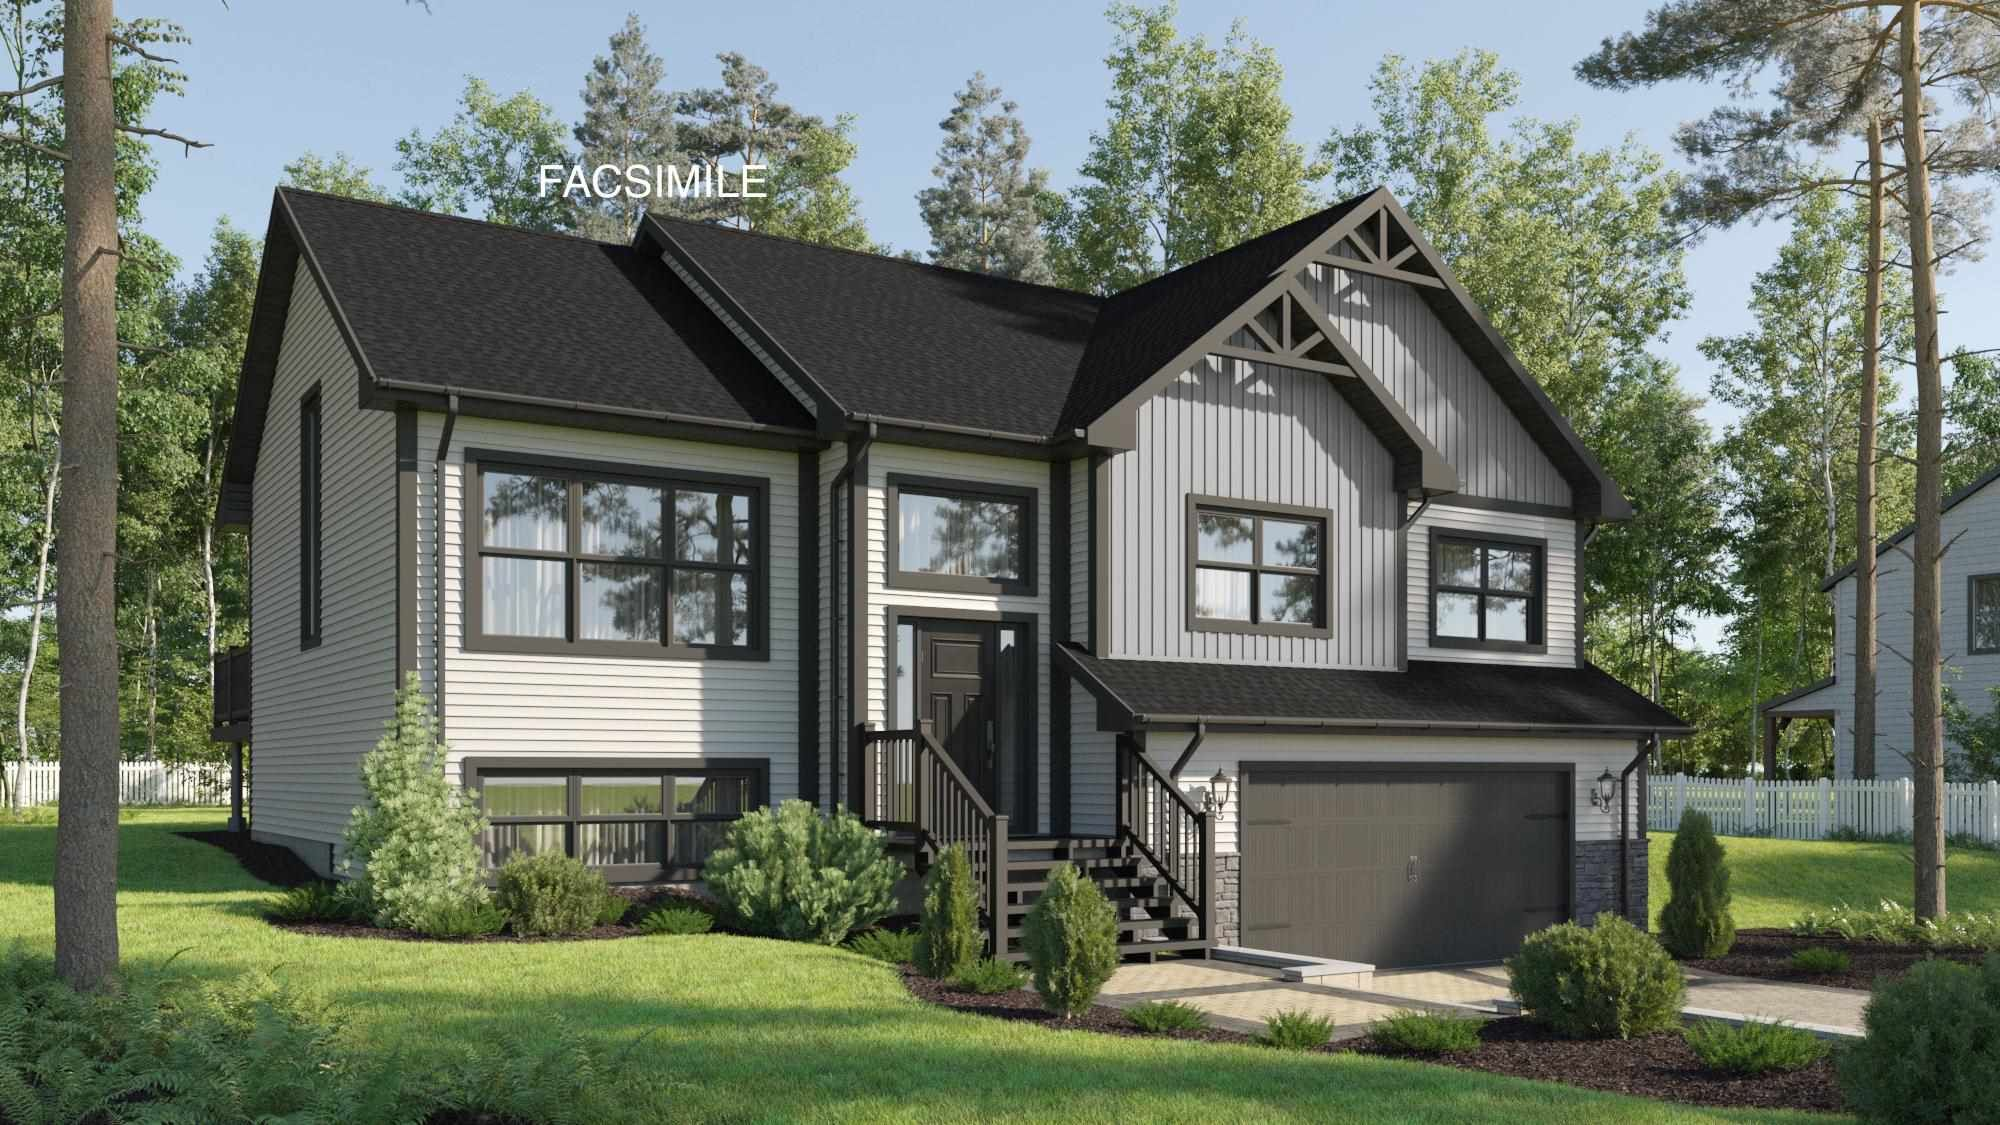 Main Photo: Lot 219A 87 Sidhu Drive in Beaver Bank: 26-Beaverbank, Upper Sackville Residential for sale (Halifax-Dartmouth)  : MLS®# 202117959